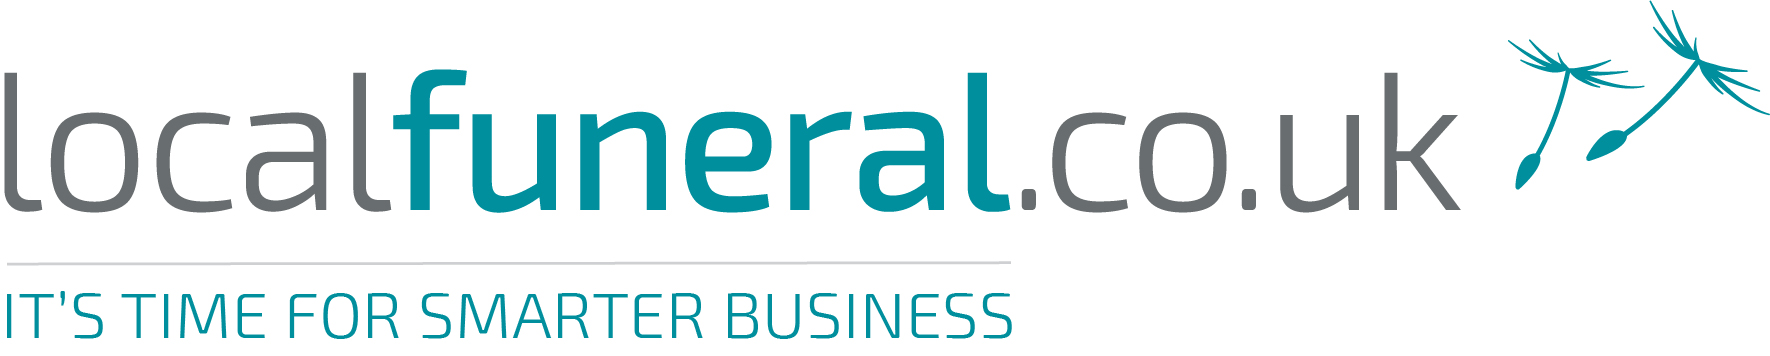 About localfuneral.co.uk